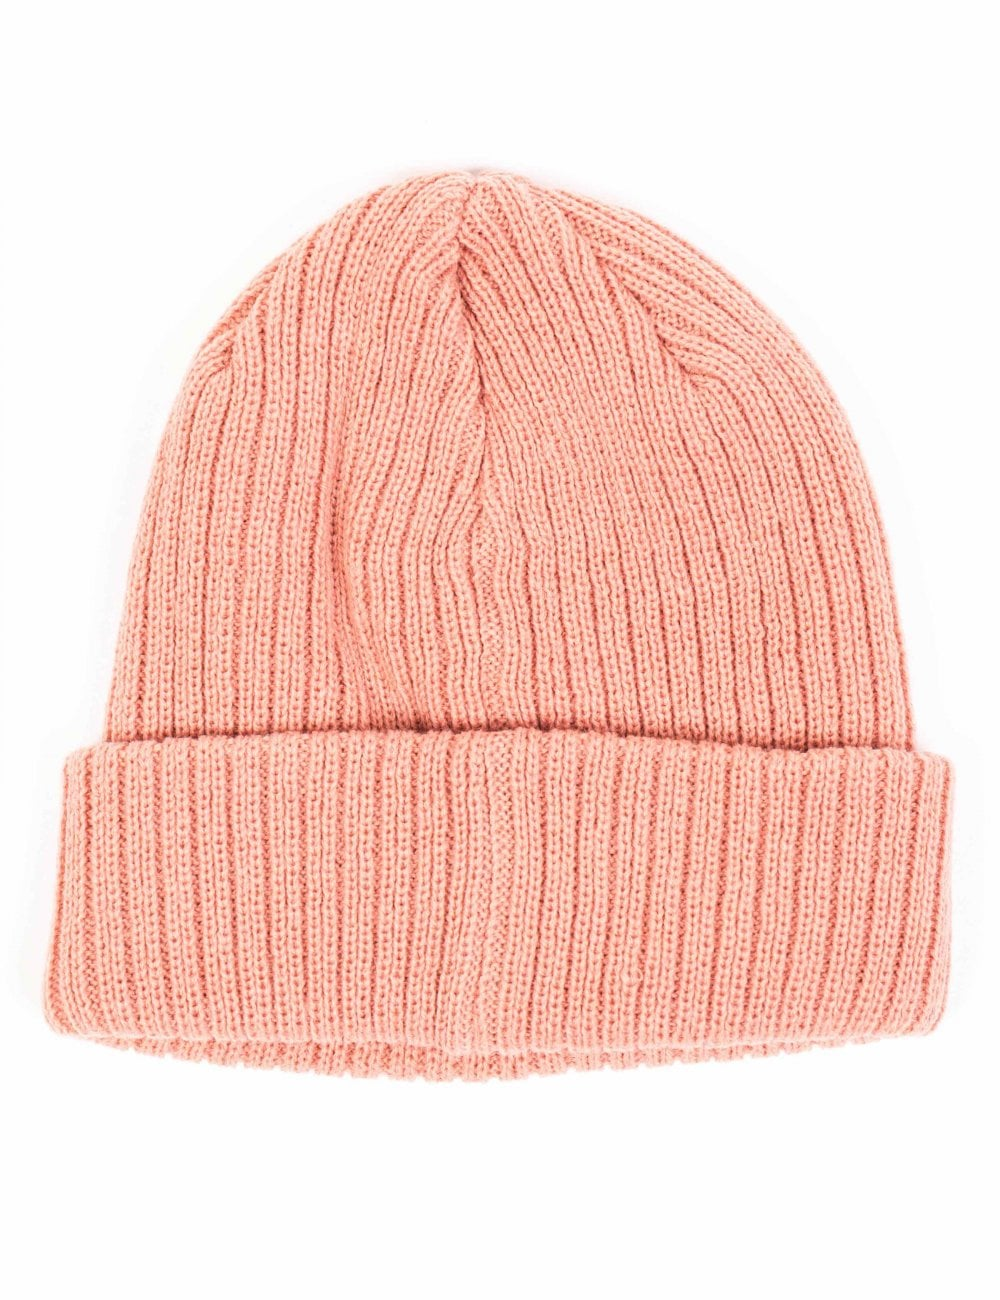 14077e0da7e Obey Clothing Churchill Beanie Hat - Dusty Rose - Hat Shop from Fat ...